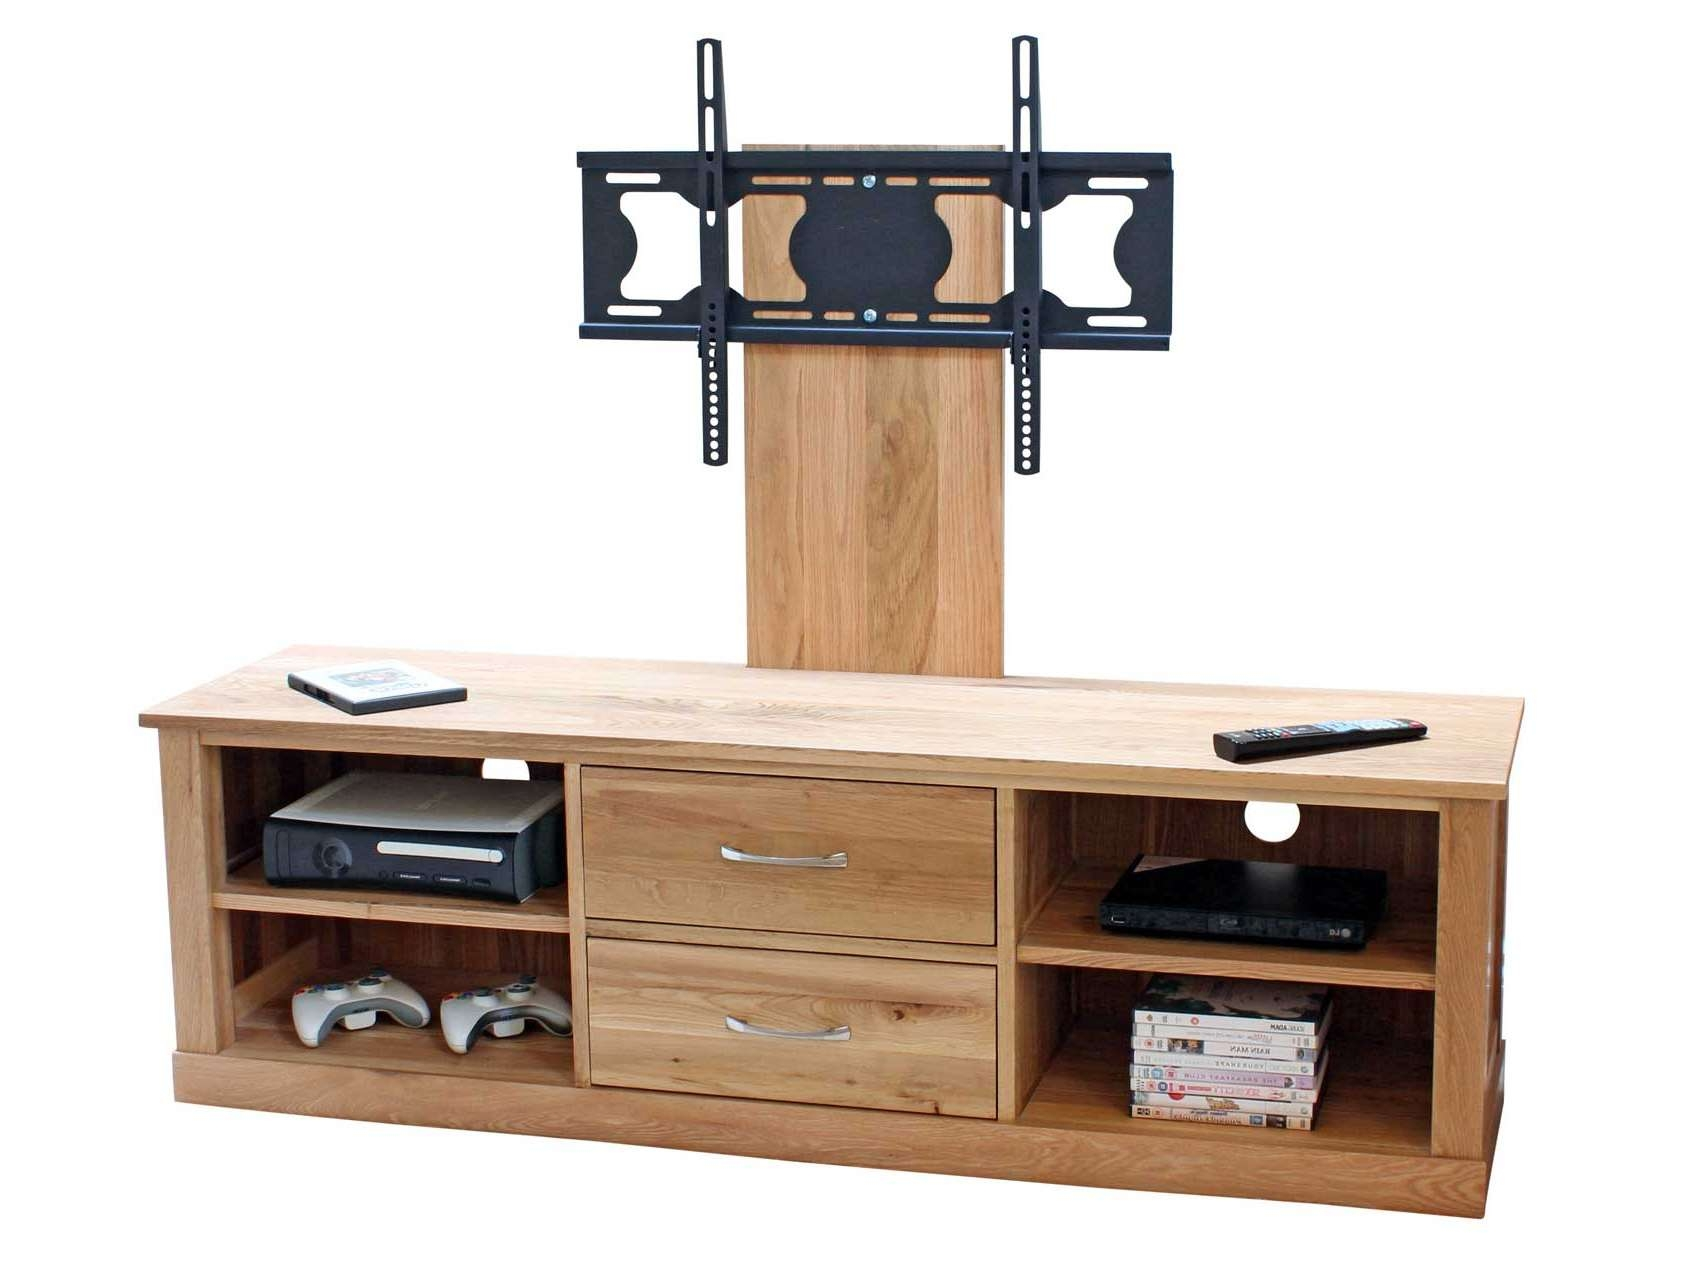 Cool Flat Screen Tv Stands With Mount | Homesfeed Throughout Oak Tv Cabinets For Flat Screens (View 2 of 20)